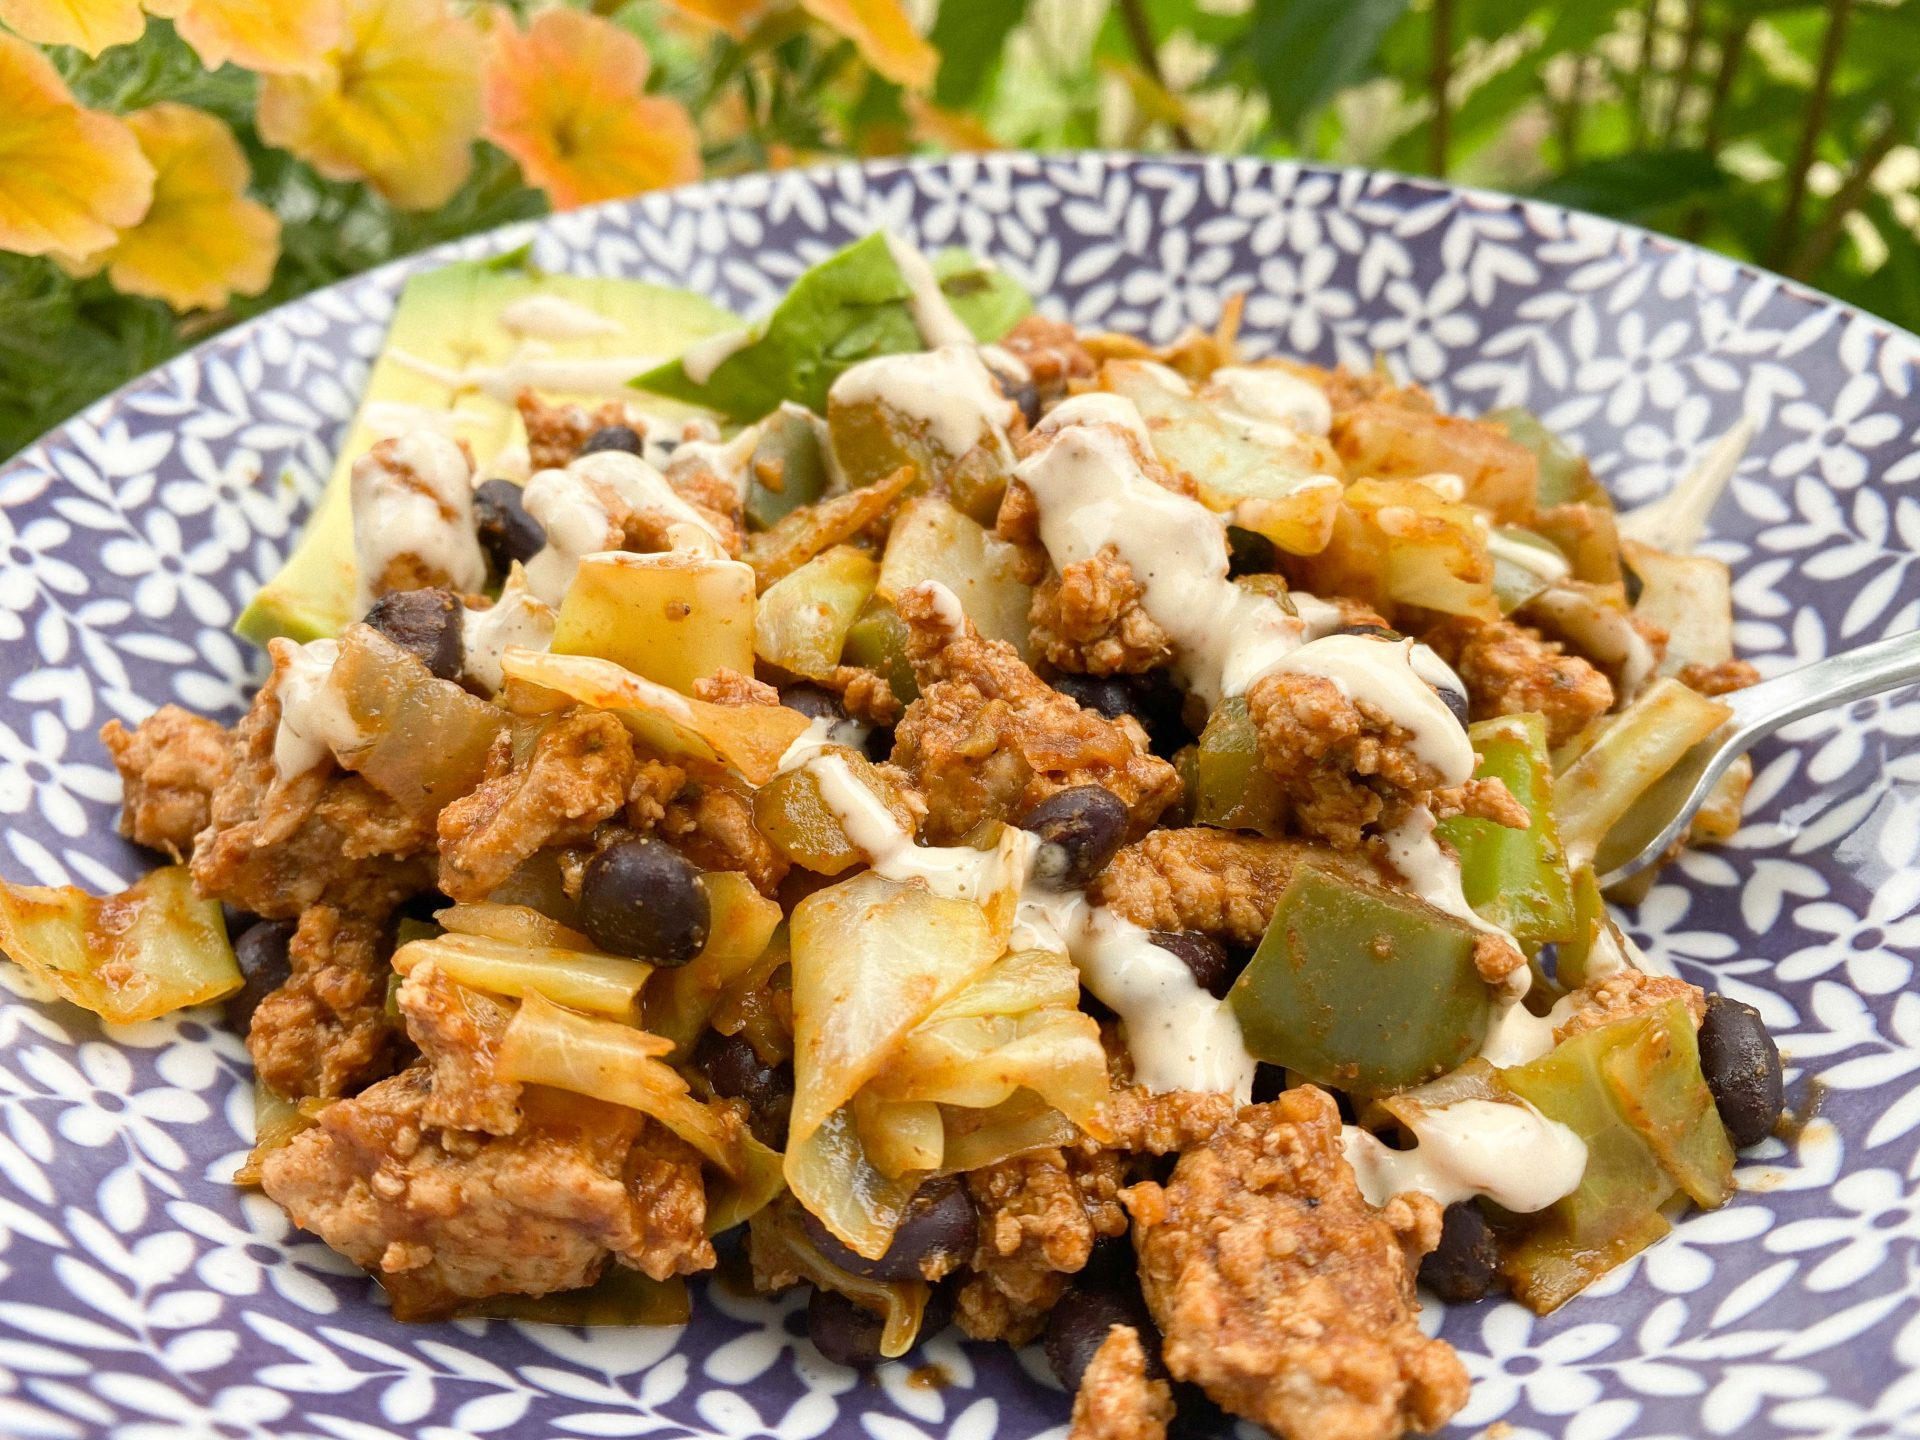 go to dinner, eating healthy after a trip, gluten-free, dairy-free, protein, healthy bowl, chipotle copy cat, ground turkey, siiete, black beans, turkey, the best dinner, weight loss meal, food